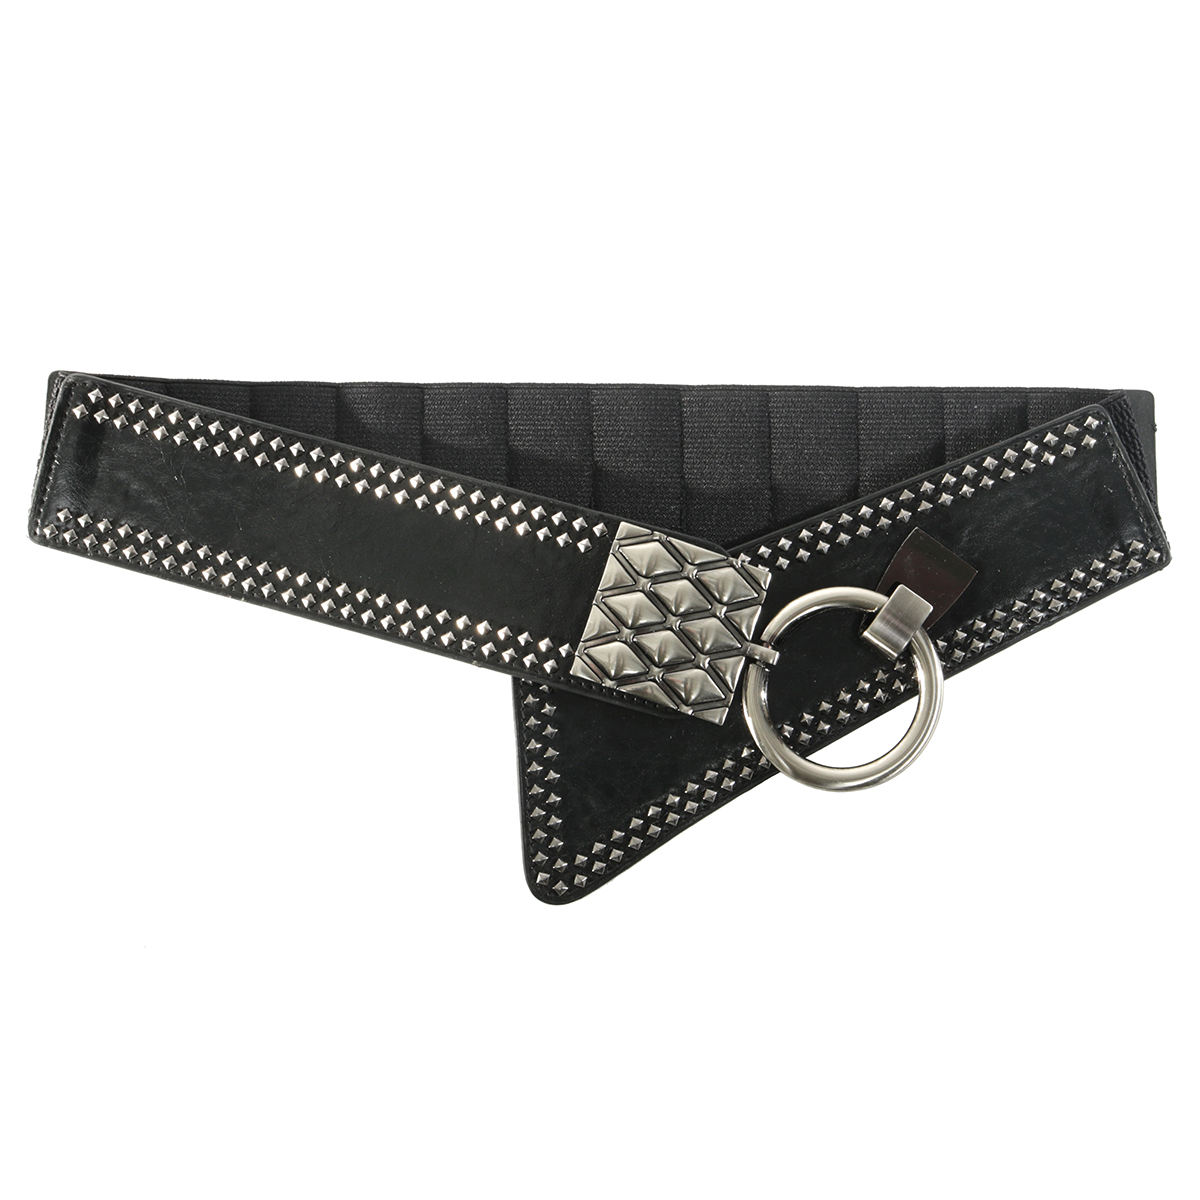 "BLK 37"" RIVET BELT"